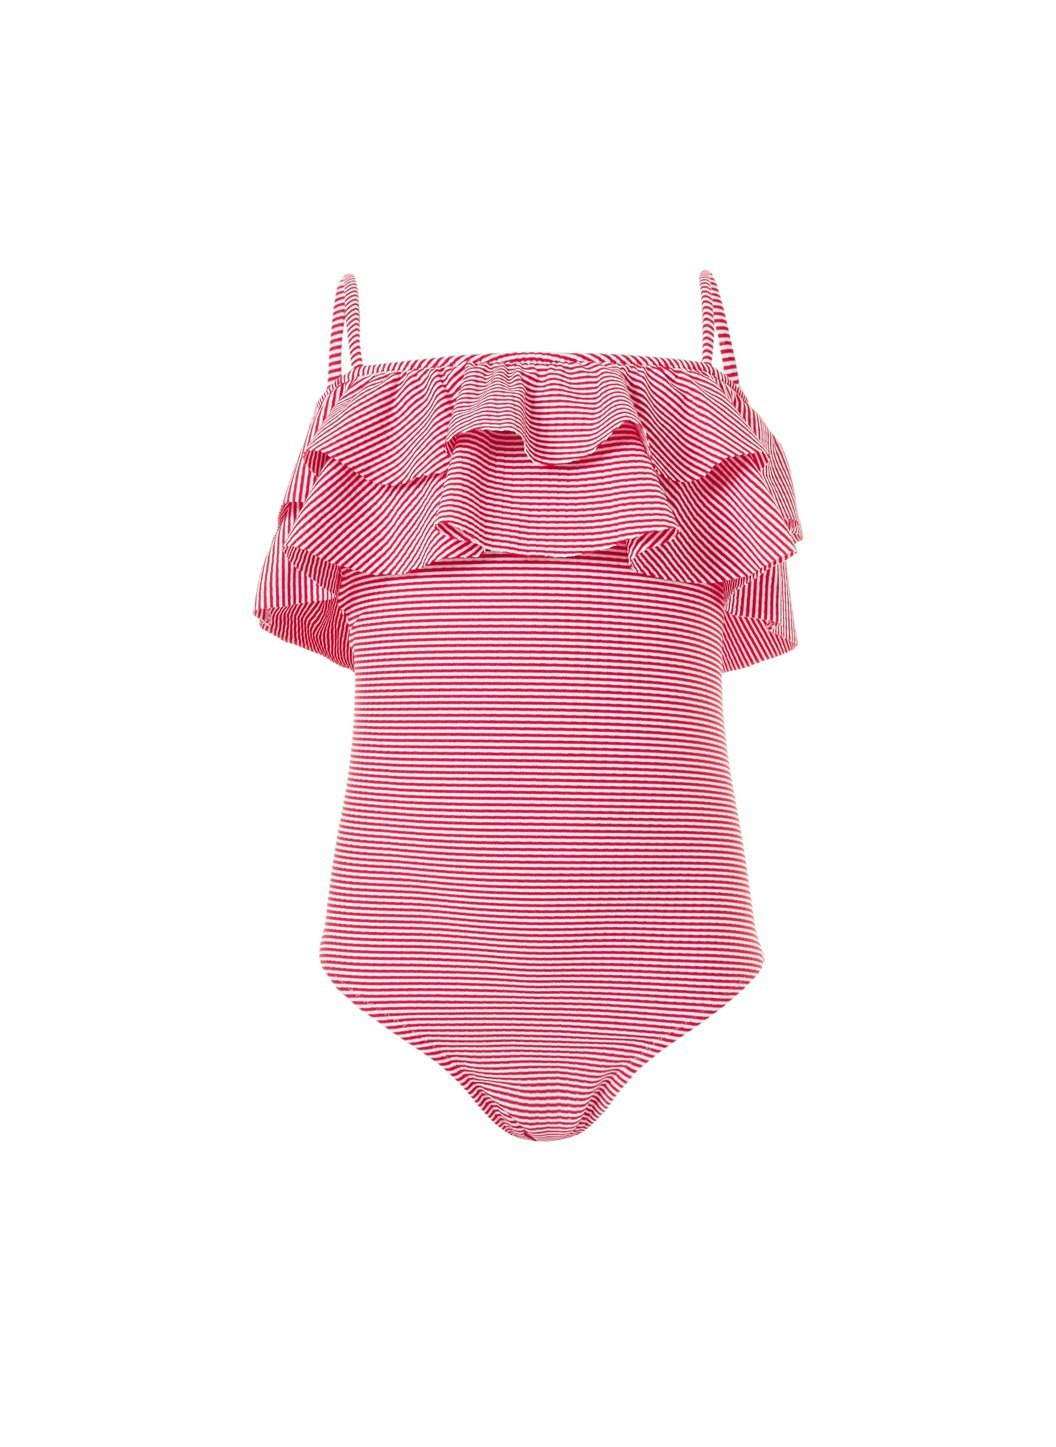 baby ivy red gingham frill onepiece swimsuit 2019